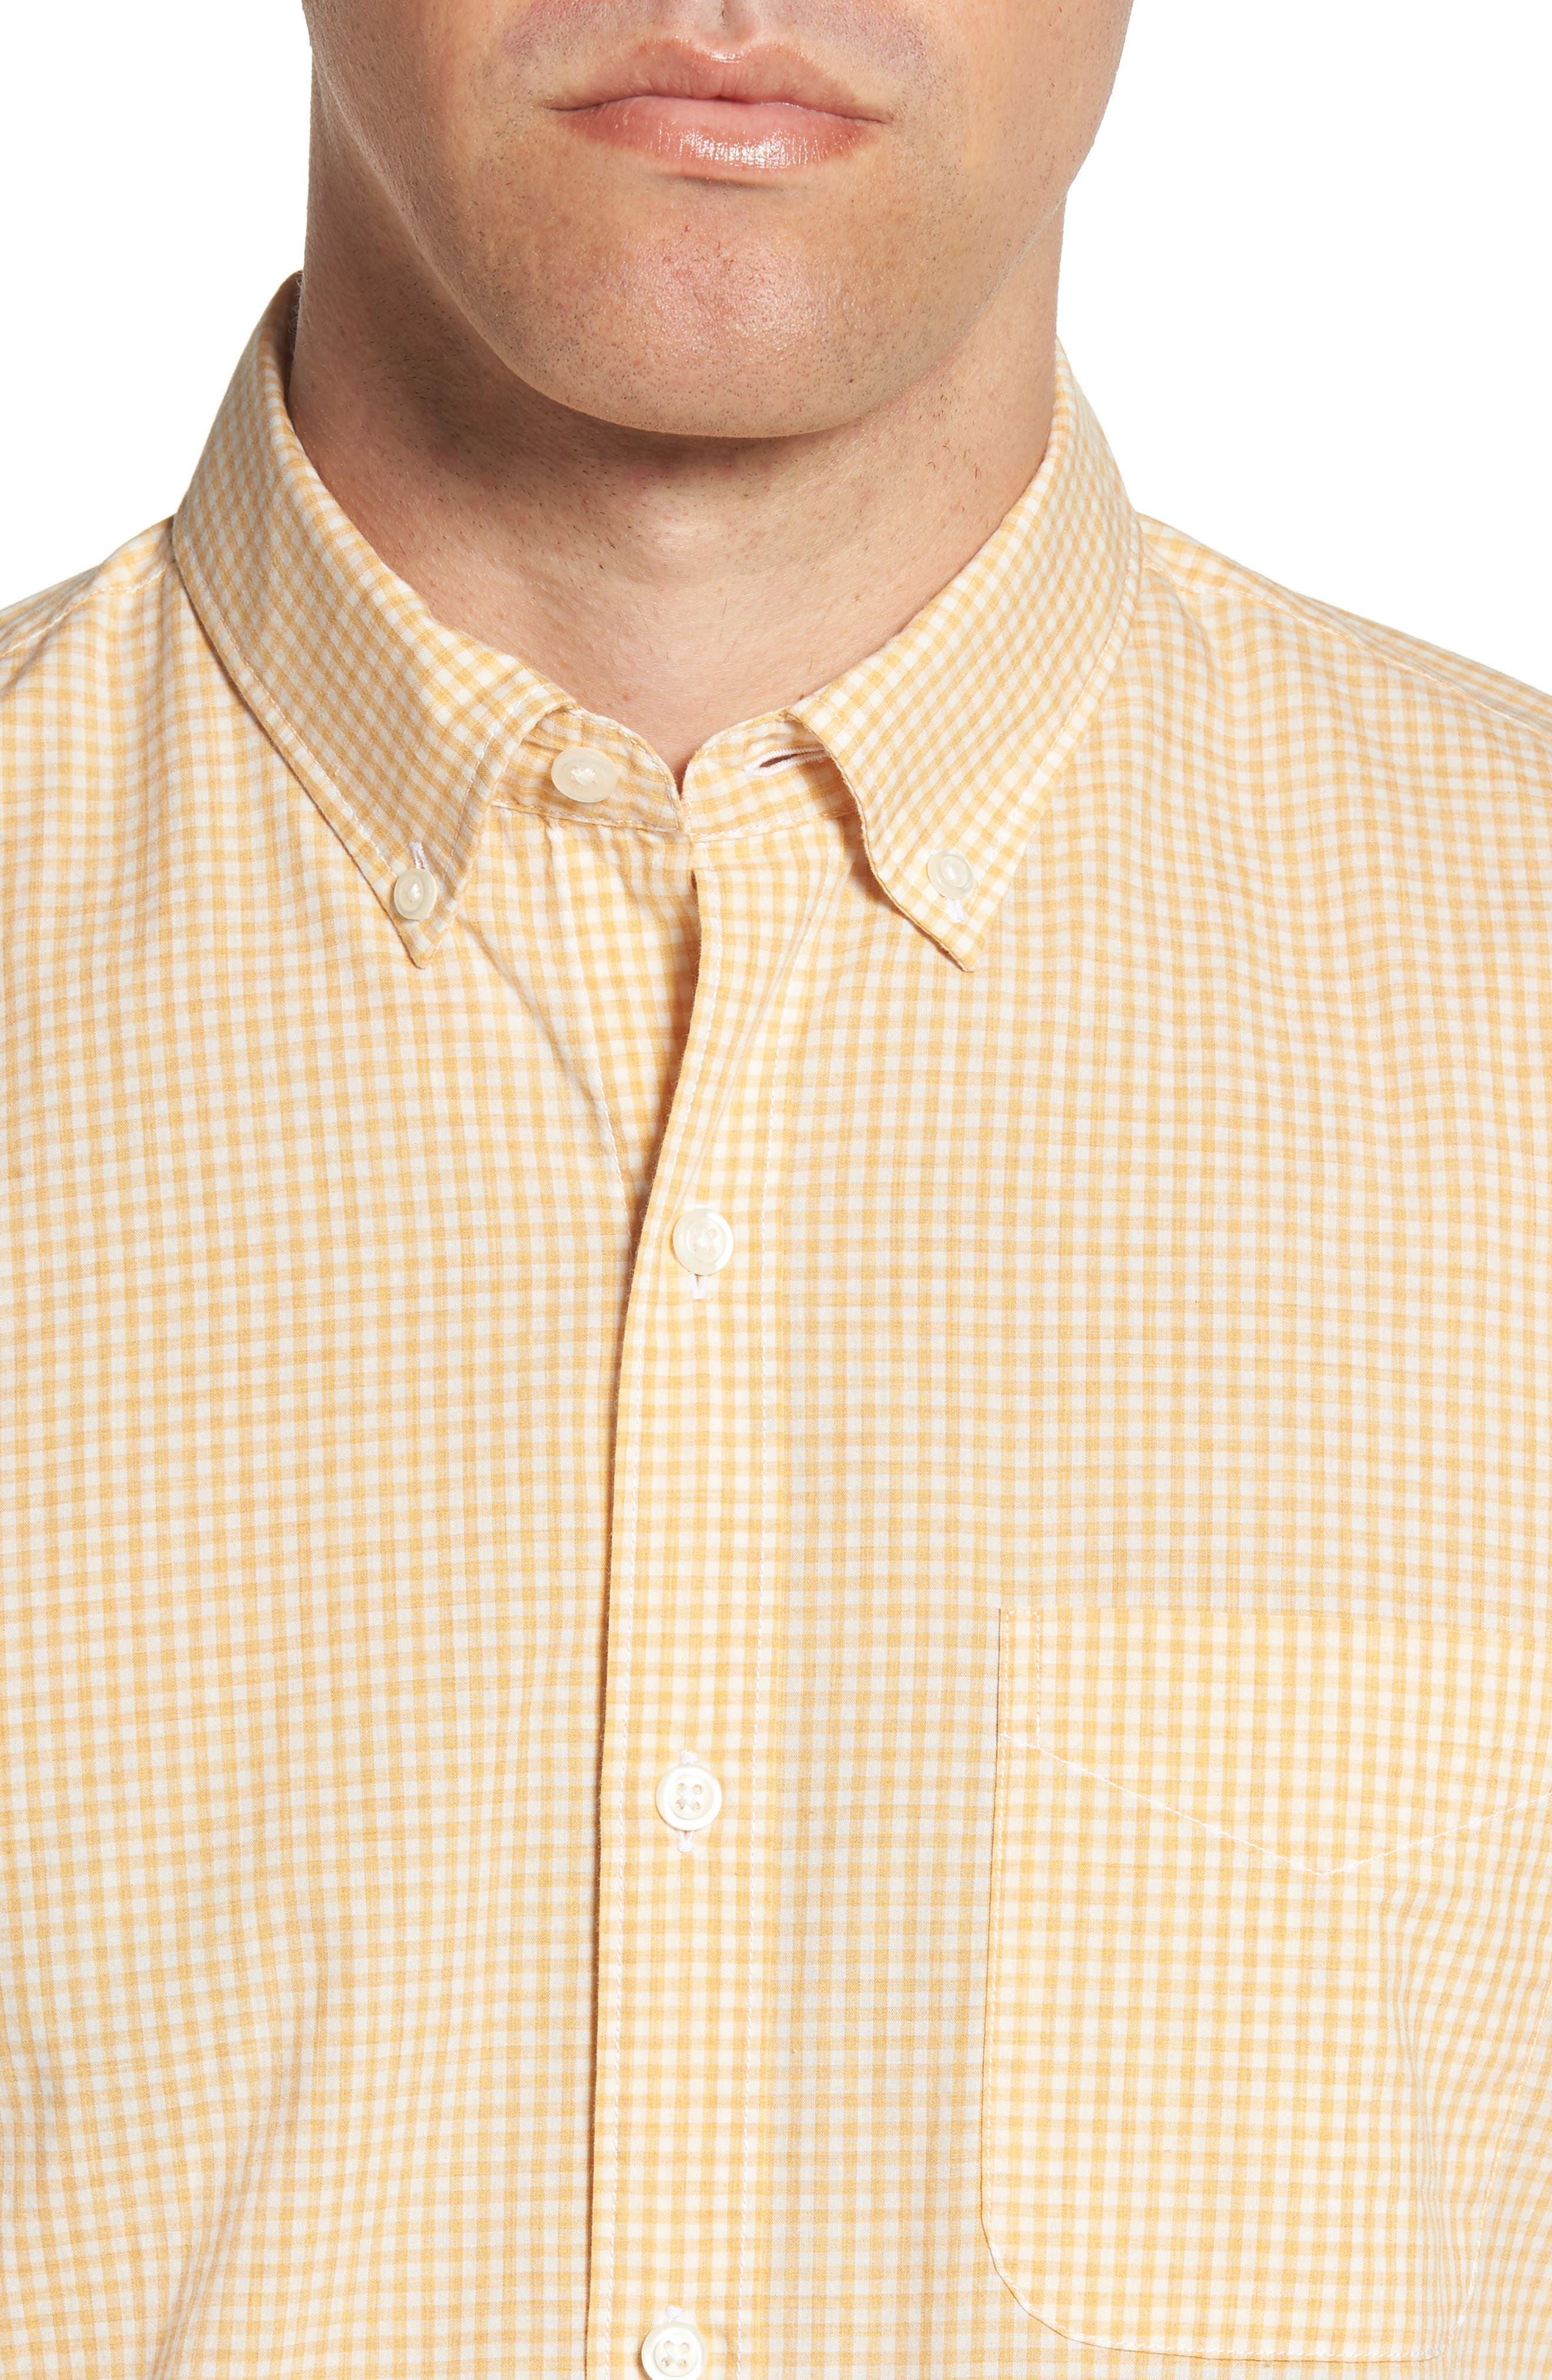 Summerweight Slim Fit Gingham Sport Shirt,                             Alternate thumbnail 2, color,                             Heathered - Heather Gold